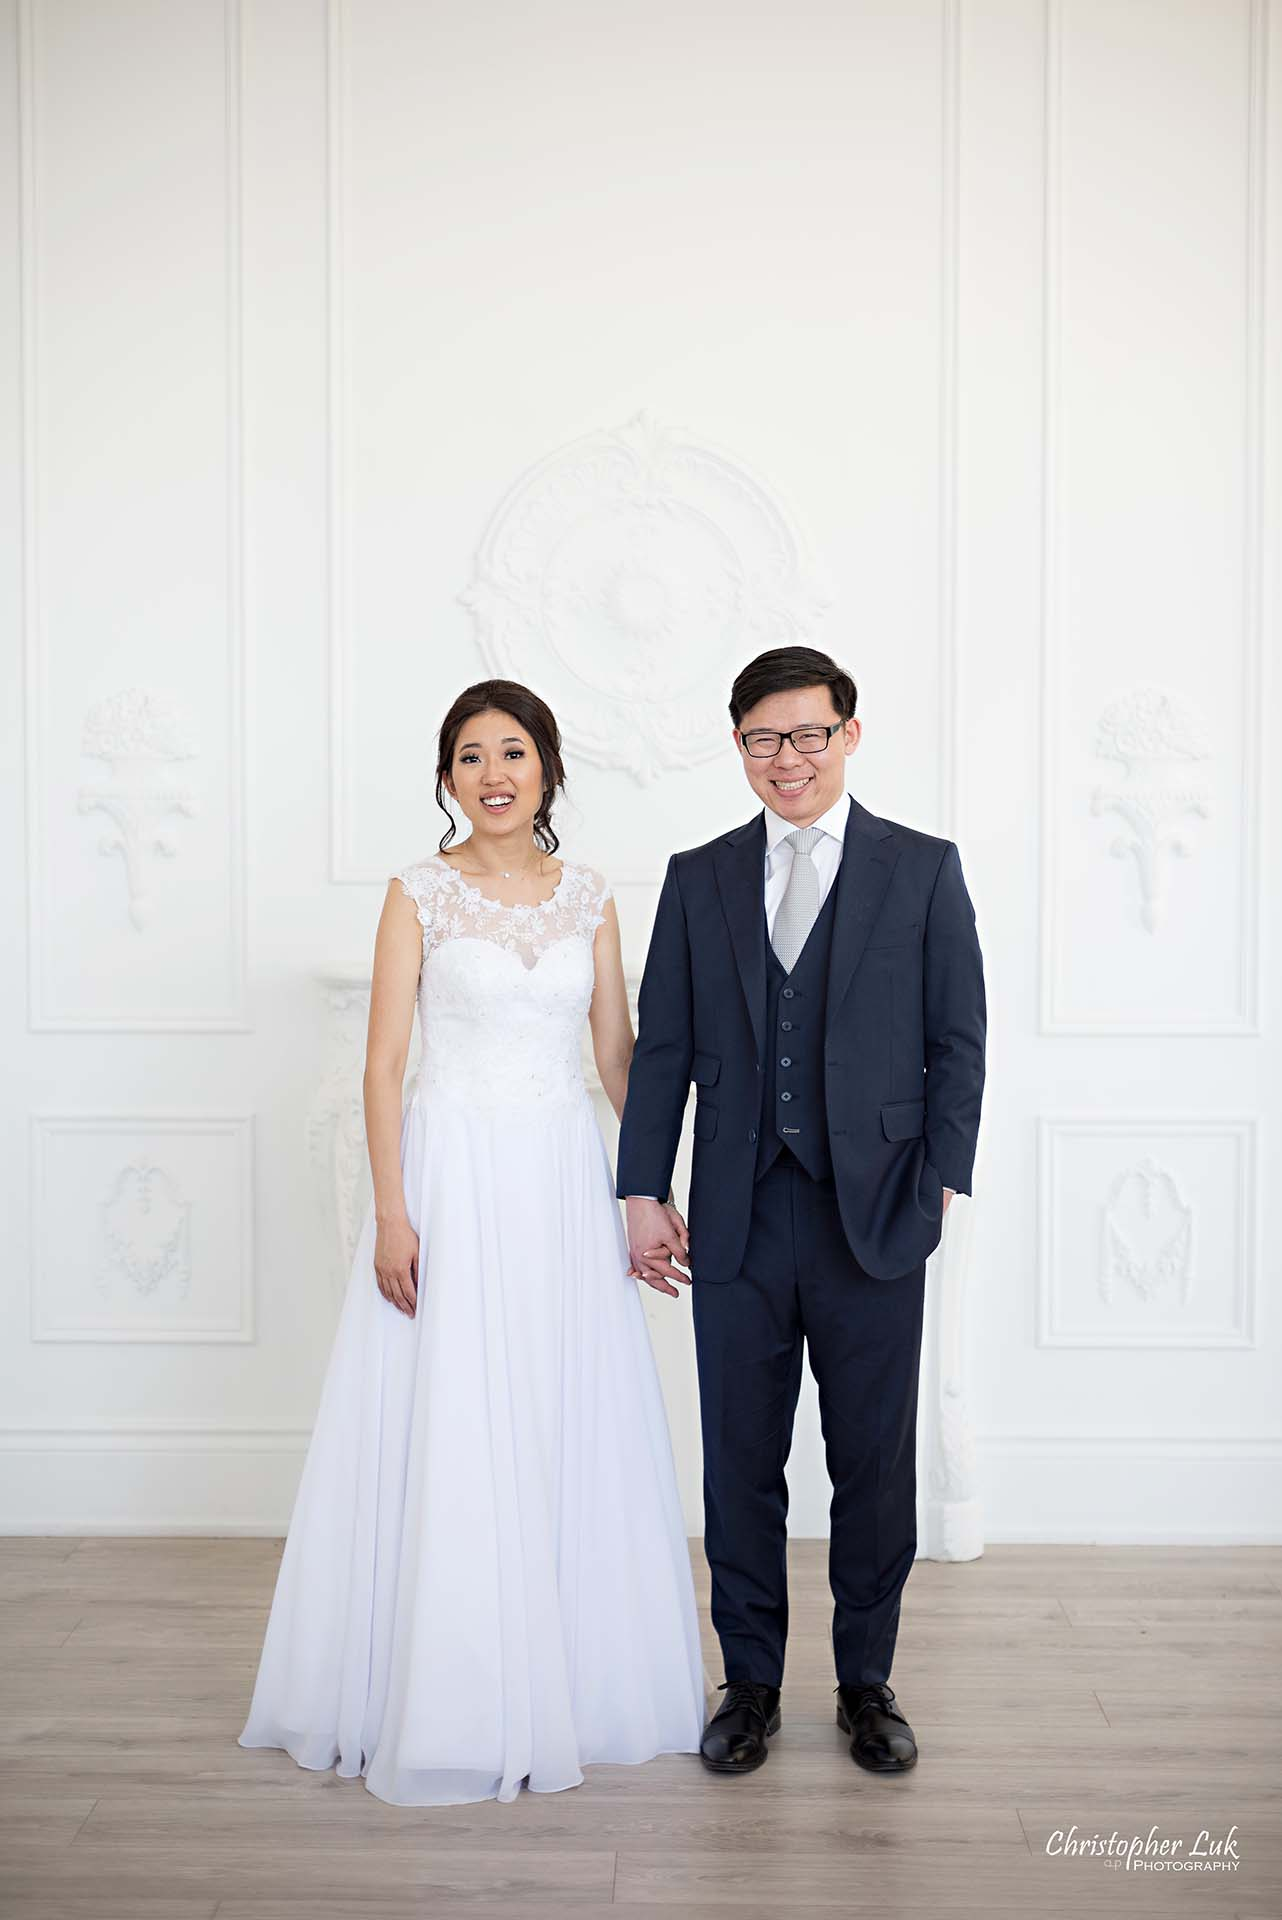 Christopher Luk Toronto Wedding Photographer - Mint Room Studios Bride Groom Natural Candid Photojournalistic Conservatory Ballroom Hug Laugh Full Body Fireplace Mantle